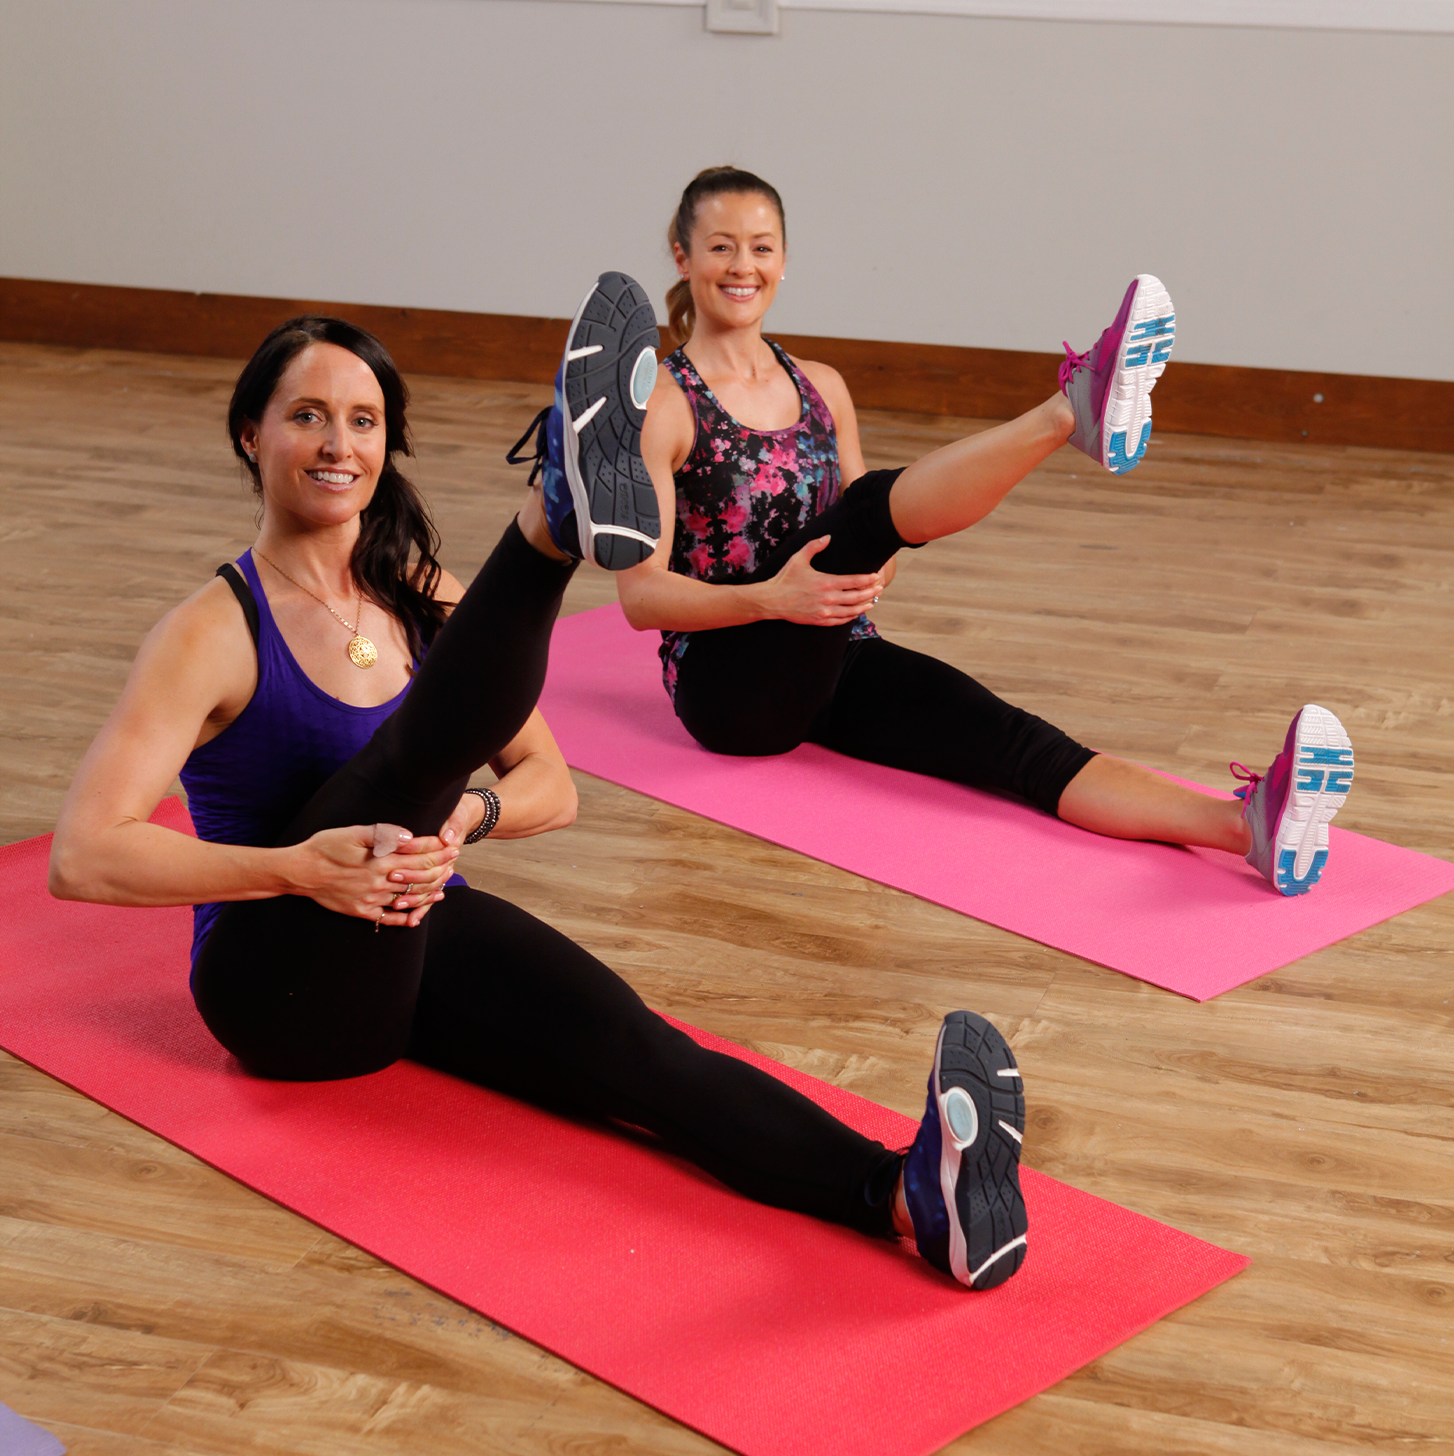 Elongate Your Limbs With This Supermodel-Approved Stretch Session